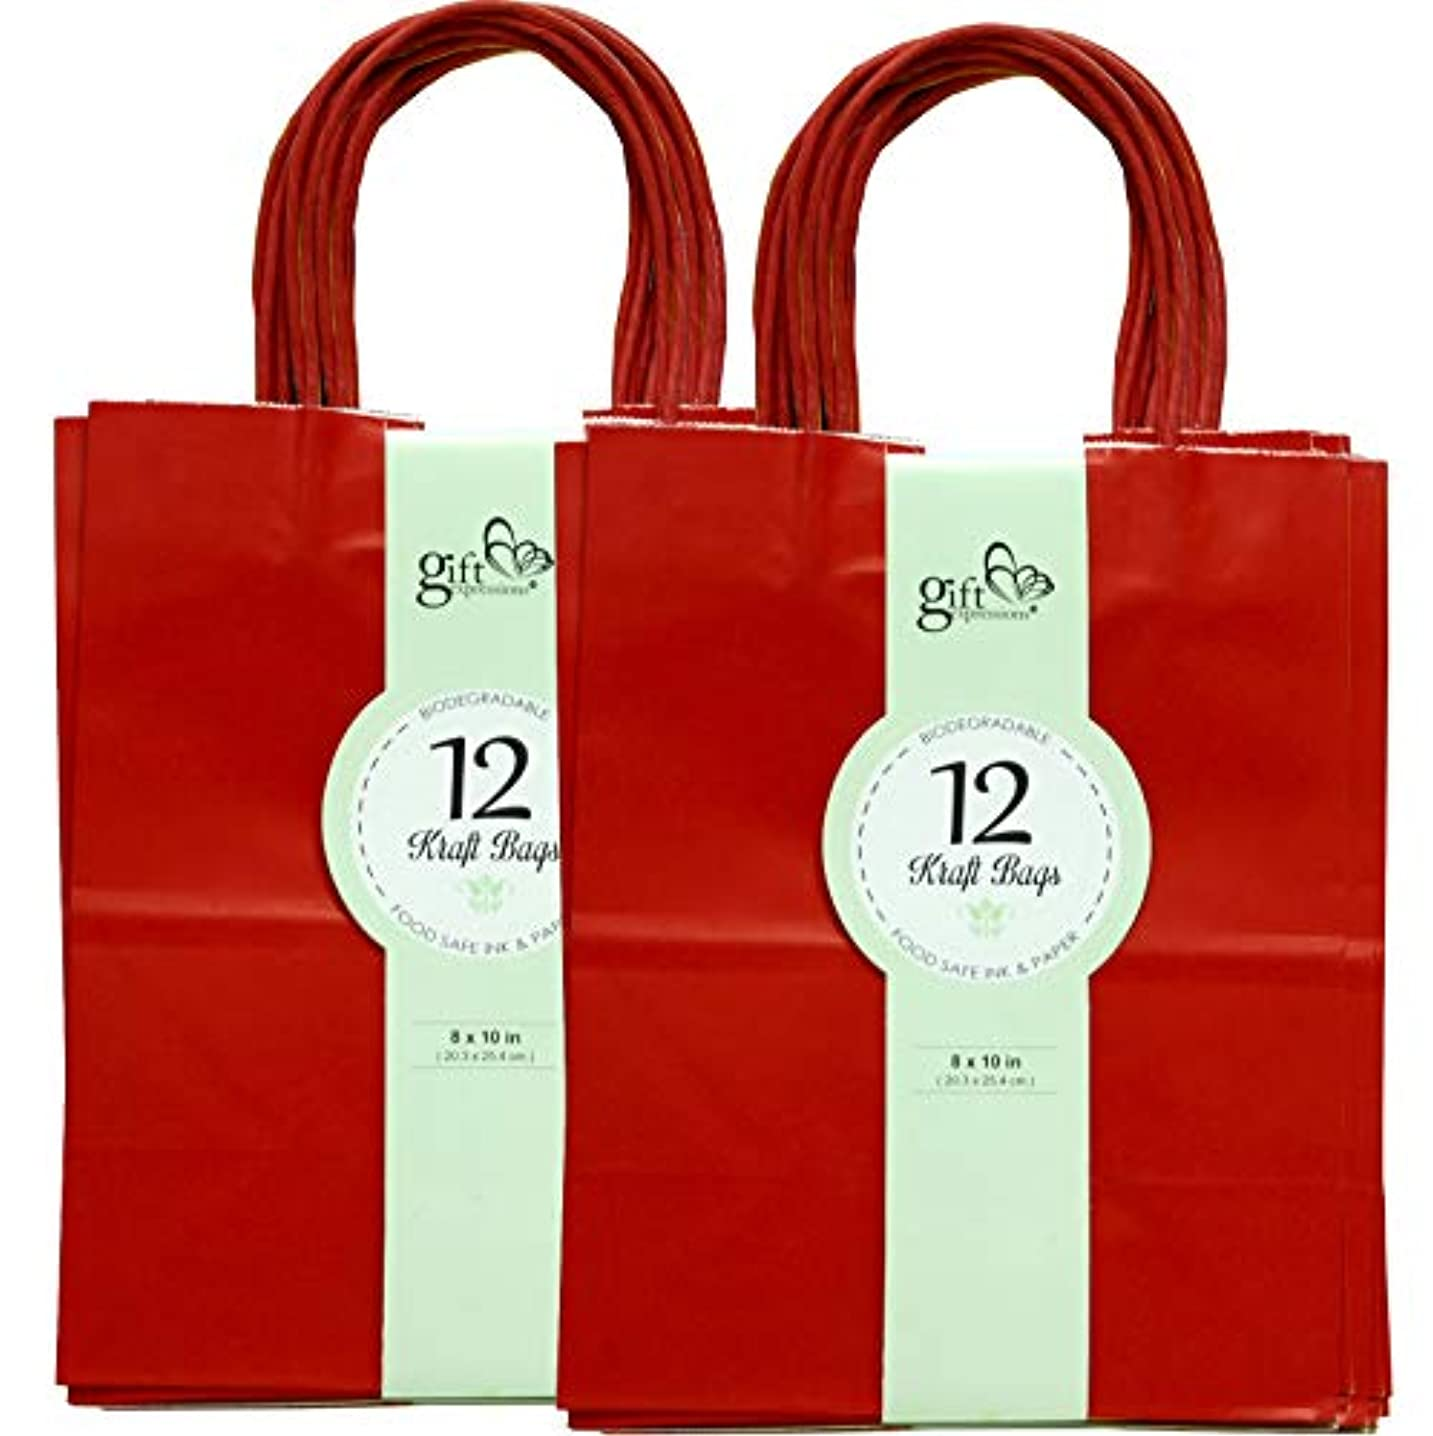 24CT MEDIUM RED BIODEGRADABLE, FOOD SAFE INK & PAPER, PREMIUM QUALITY PAPER (STURDY & THICKER), KRAFT BAG WITH COLORED STURDY HANDLEs (Medium, Red)